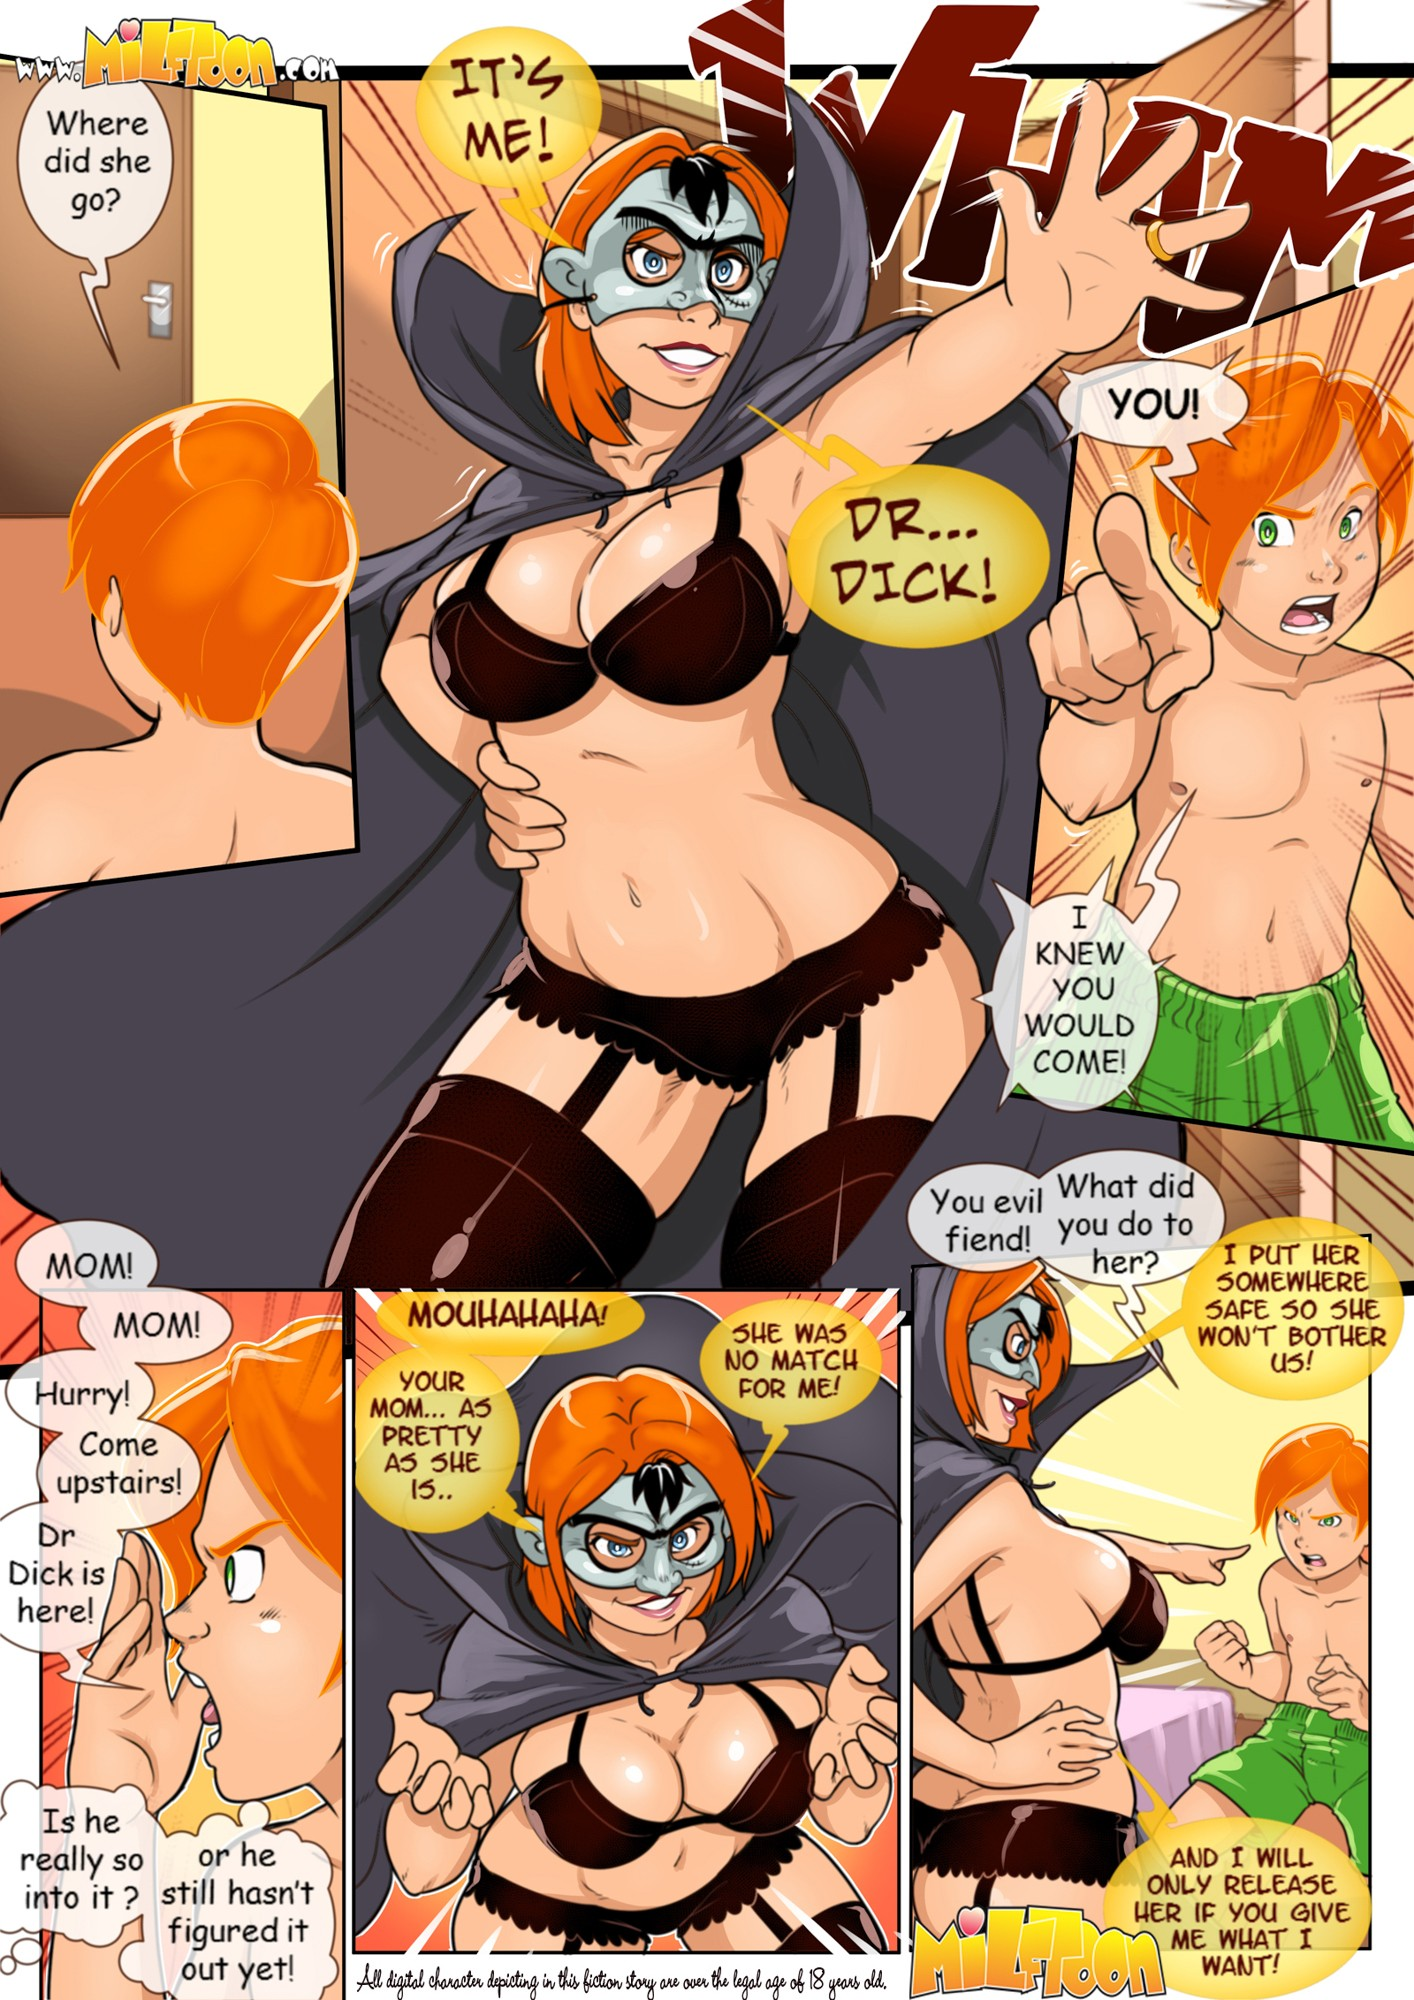 7 43 - Milf Possible. Part 1.